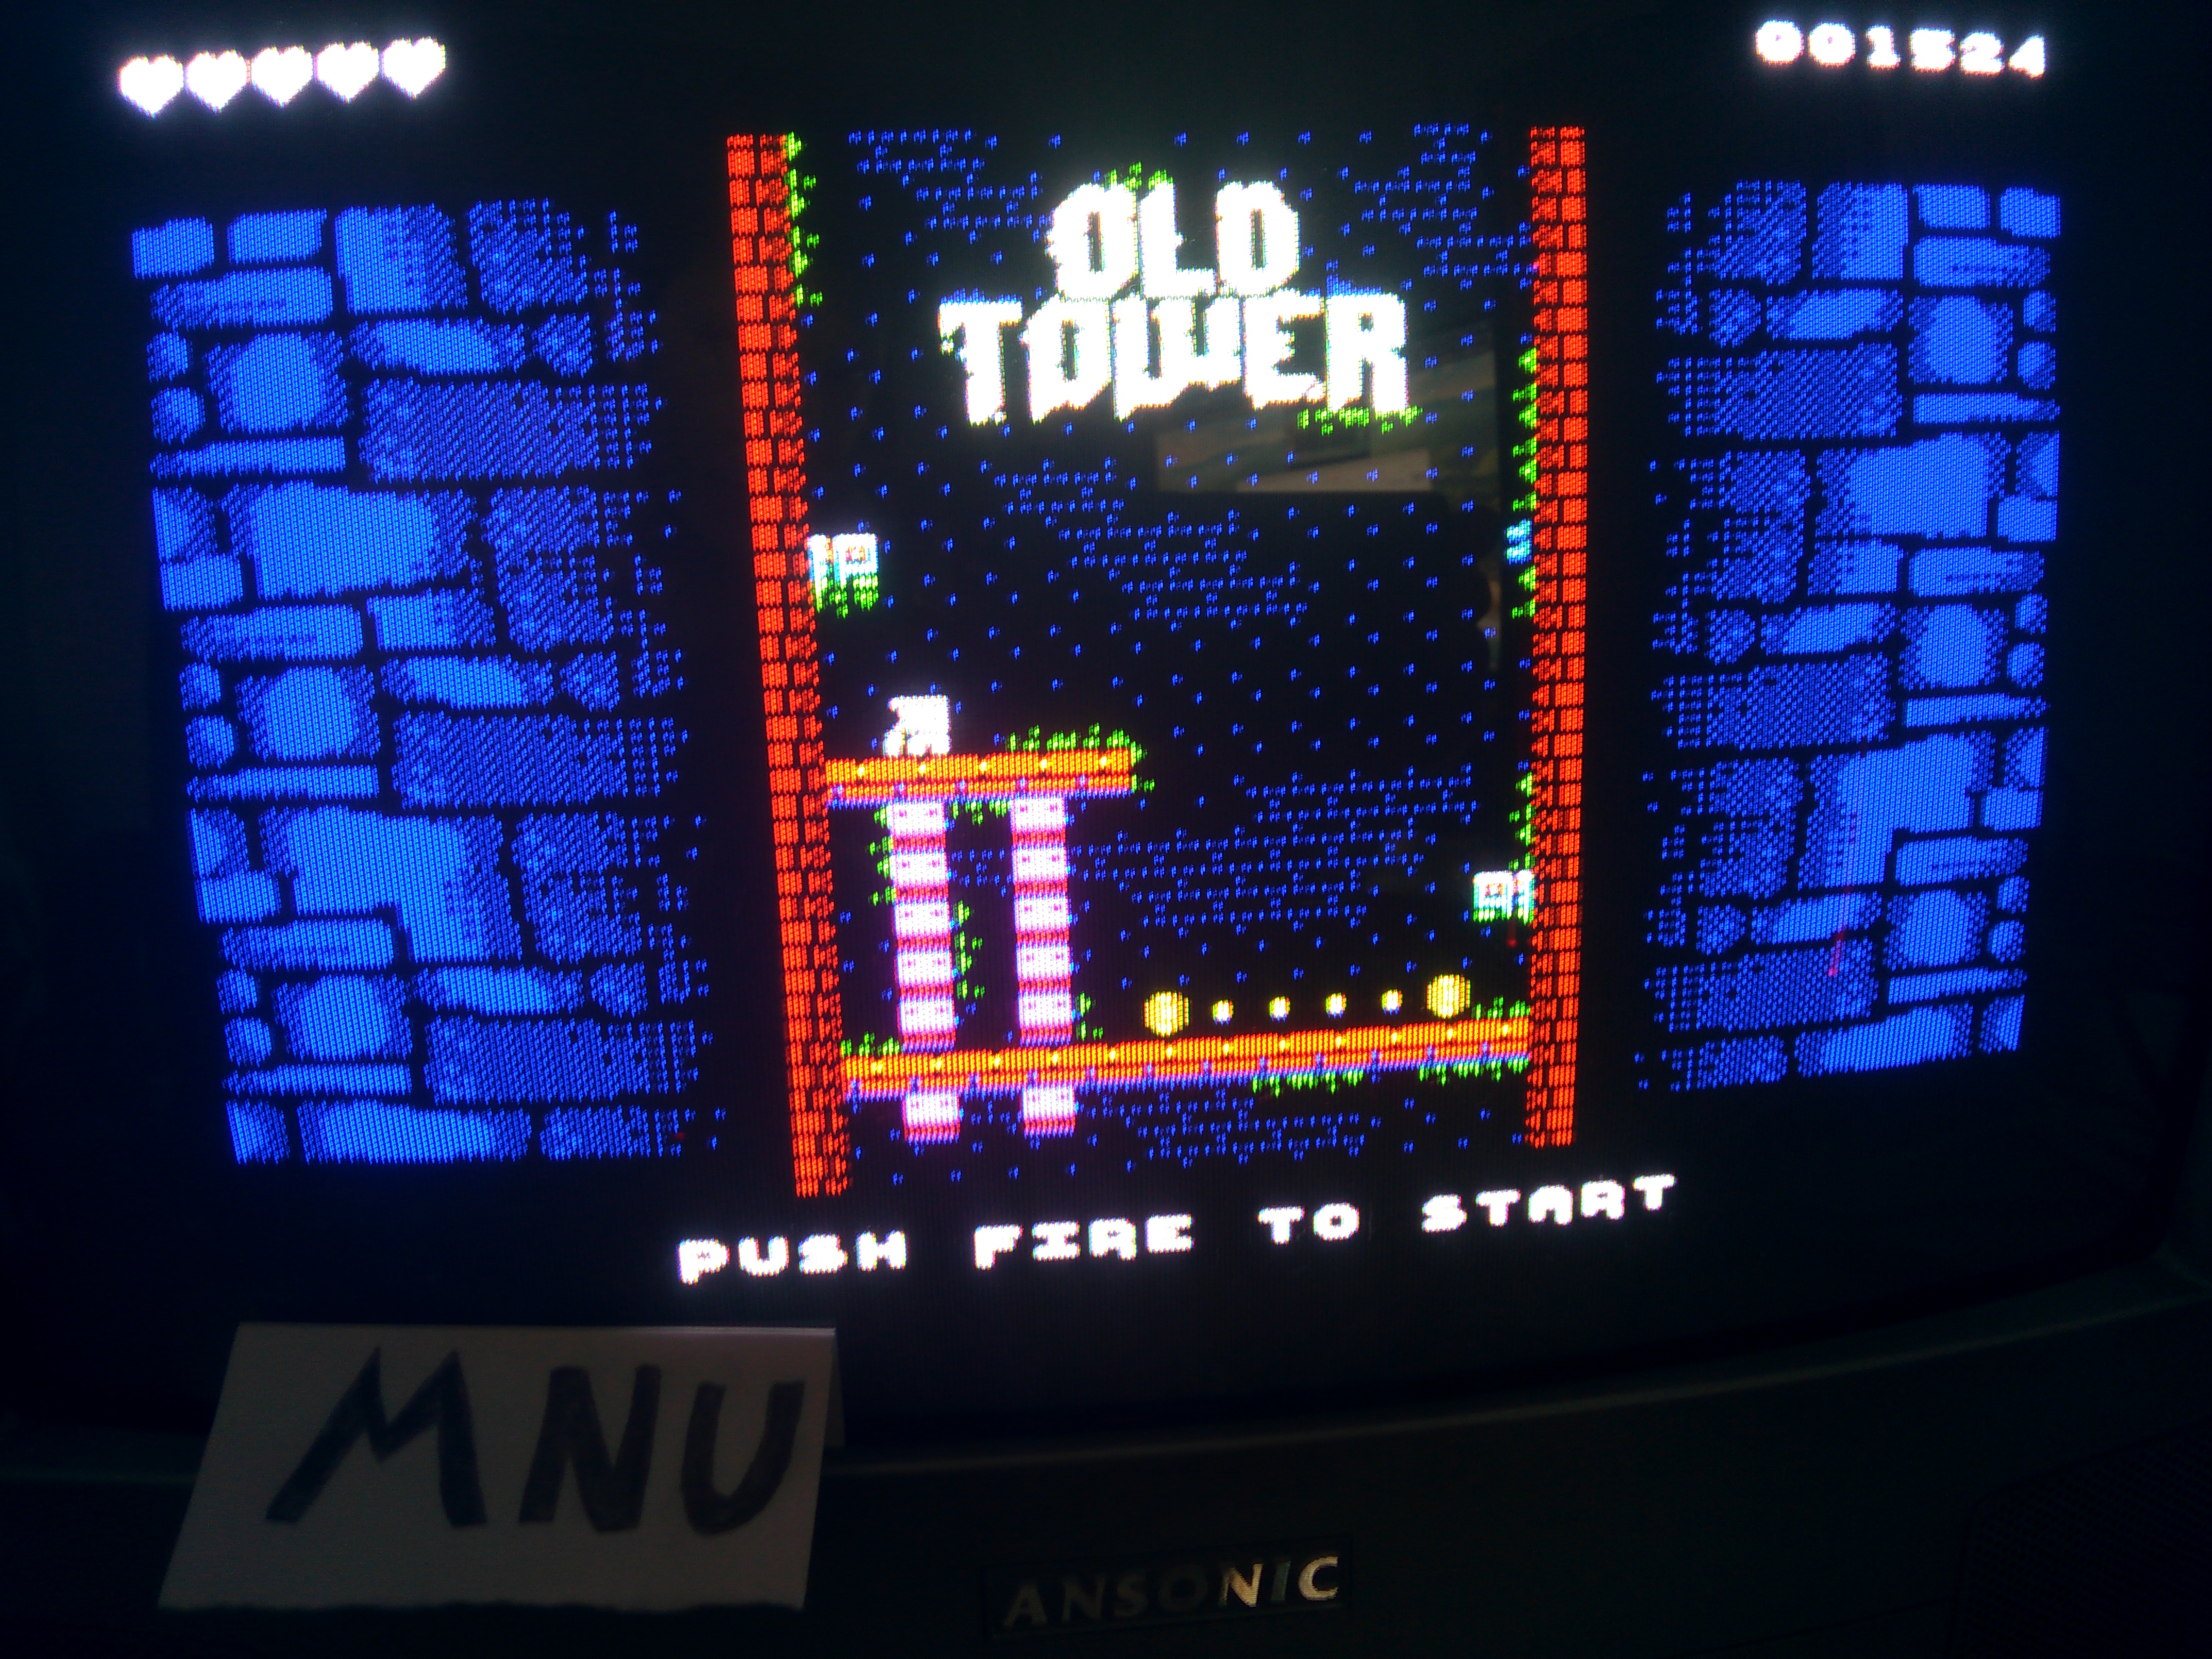 Old Tower 1,524 points